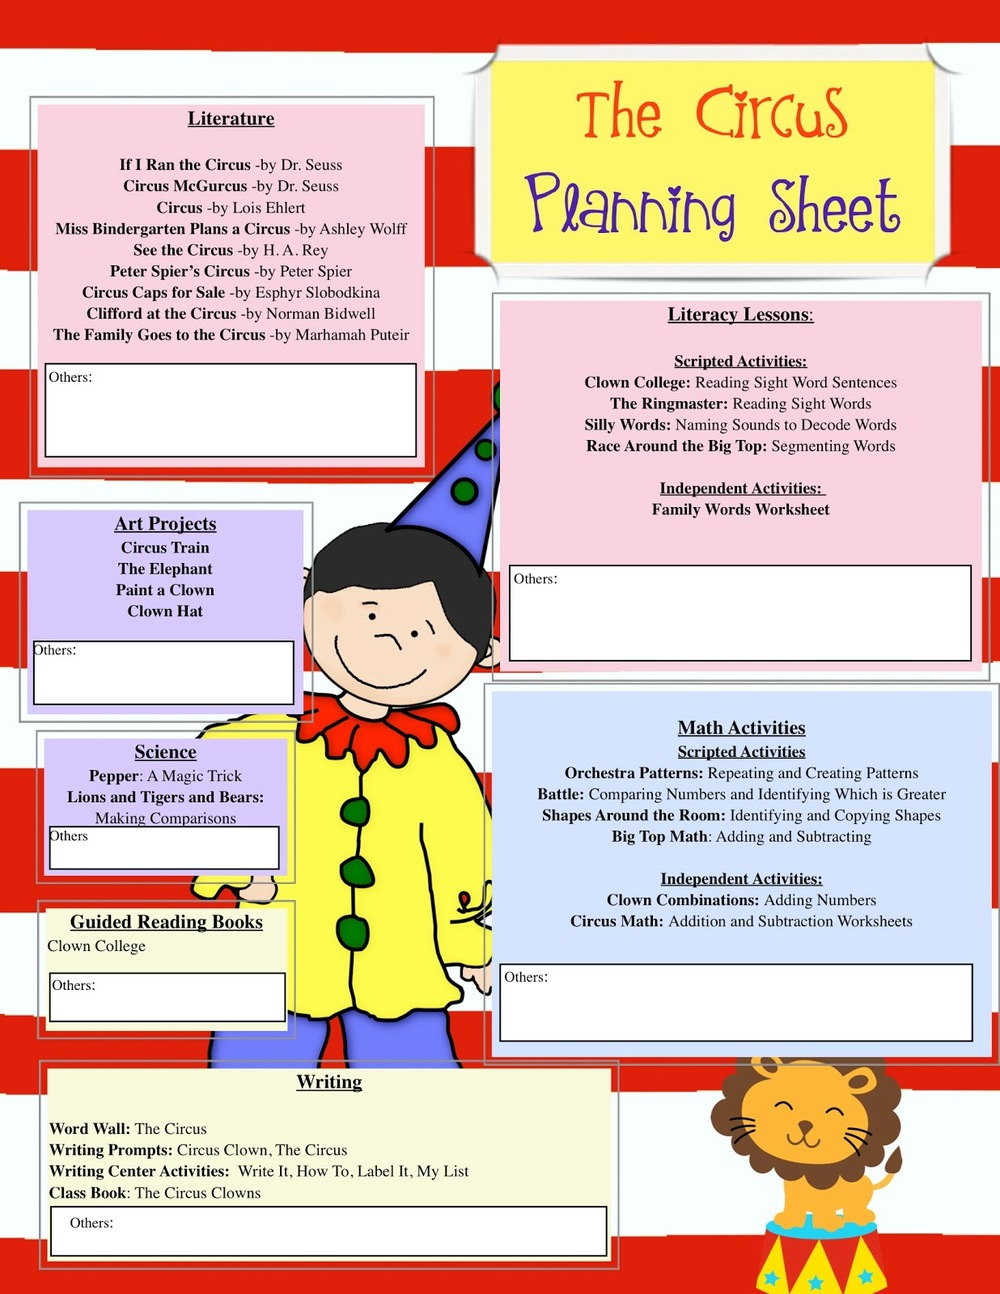 Every unit includes its own cross-curricular planing guide.